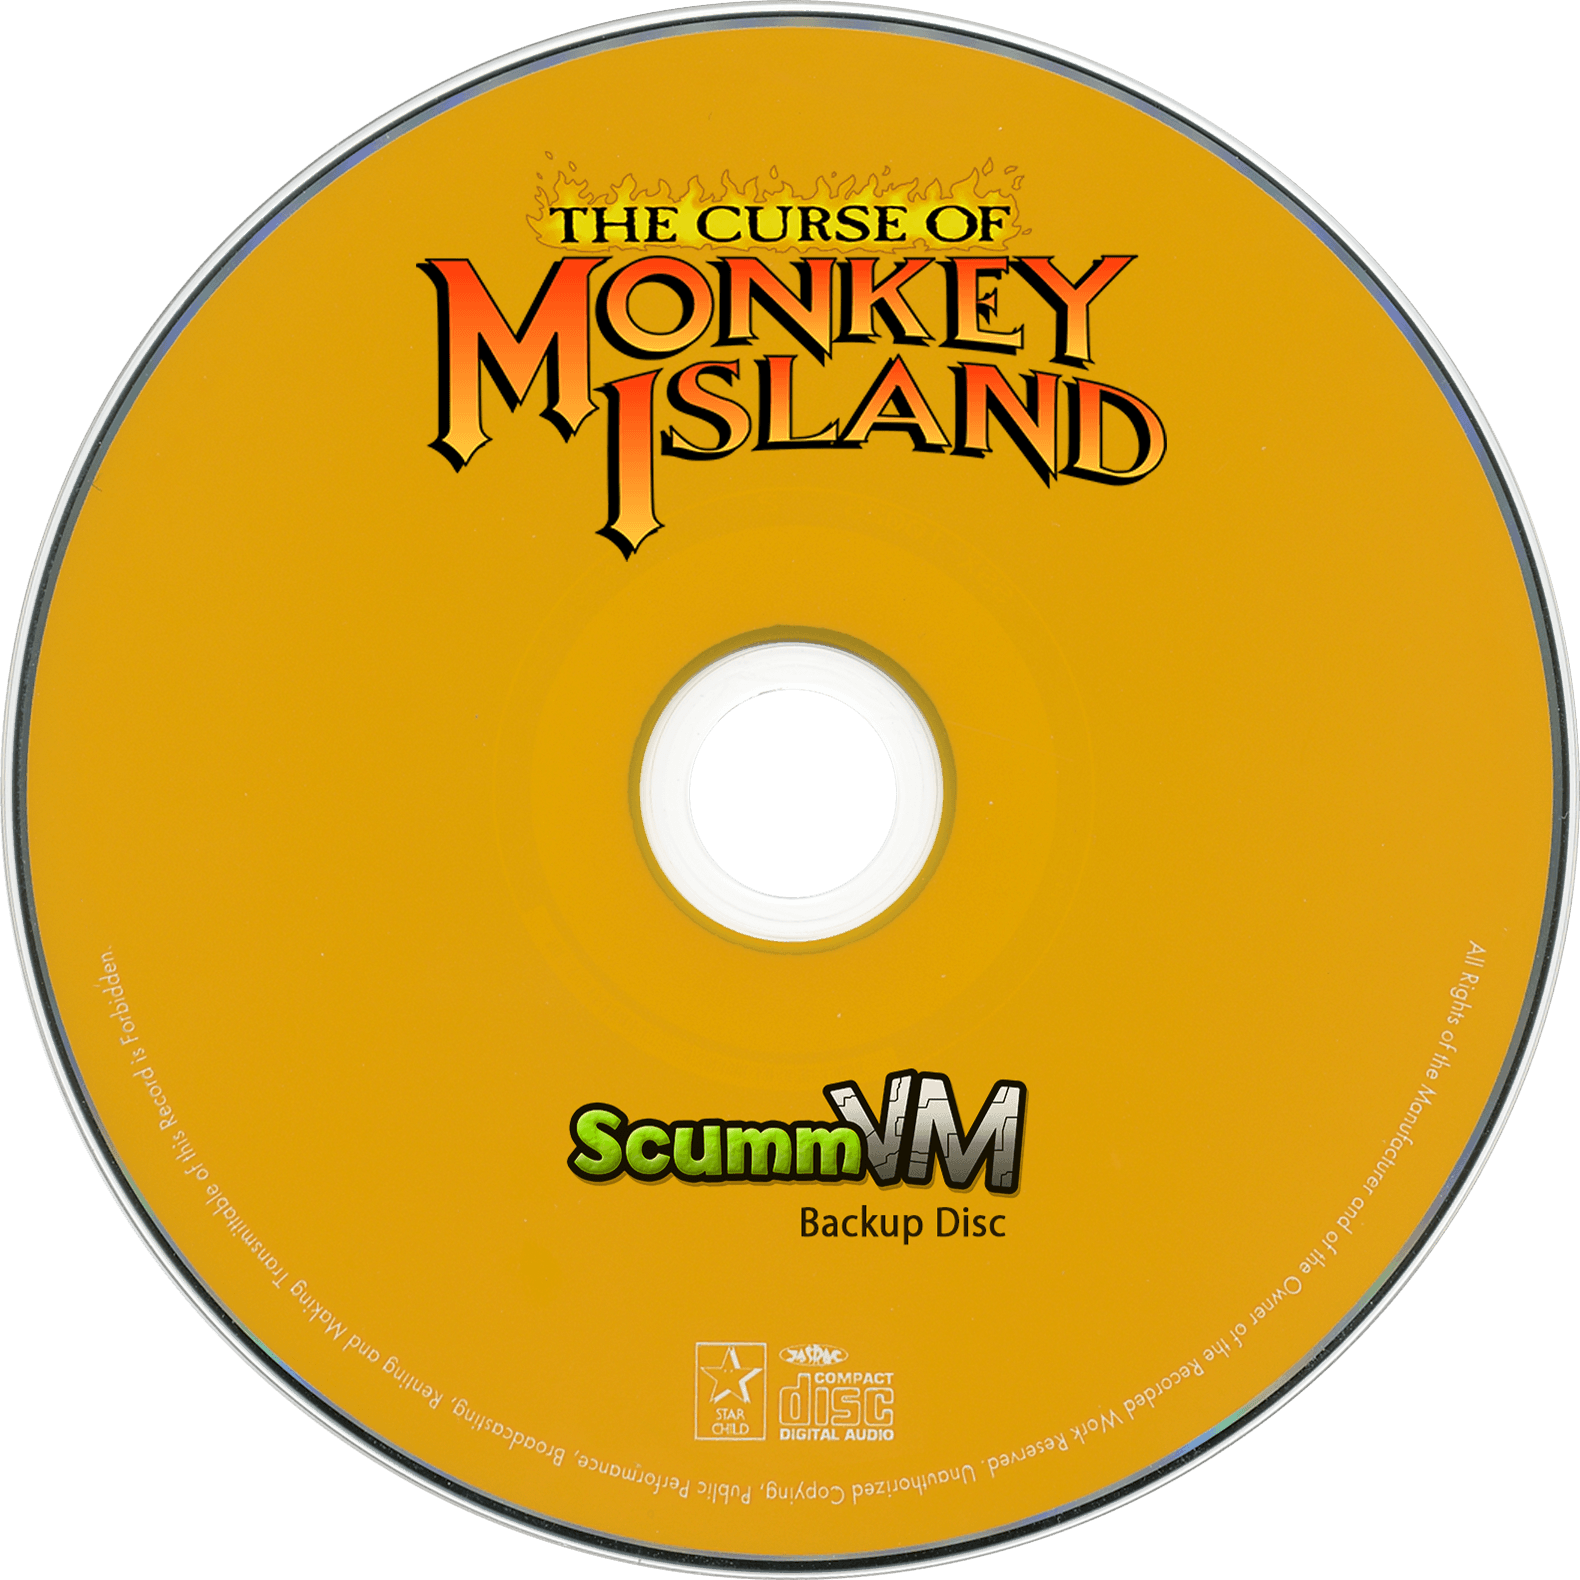 1100447258_TheCurseofMonkeyIsland-01.png.19000b43a7aaa4ed5213a7b540689bdf.png